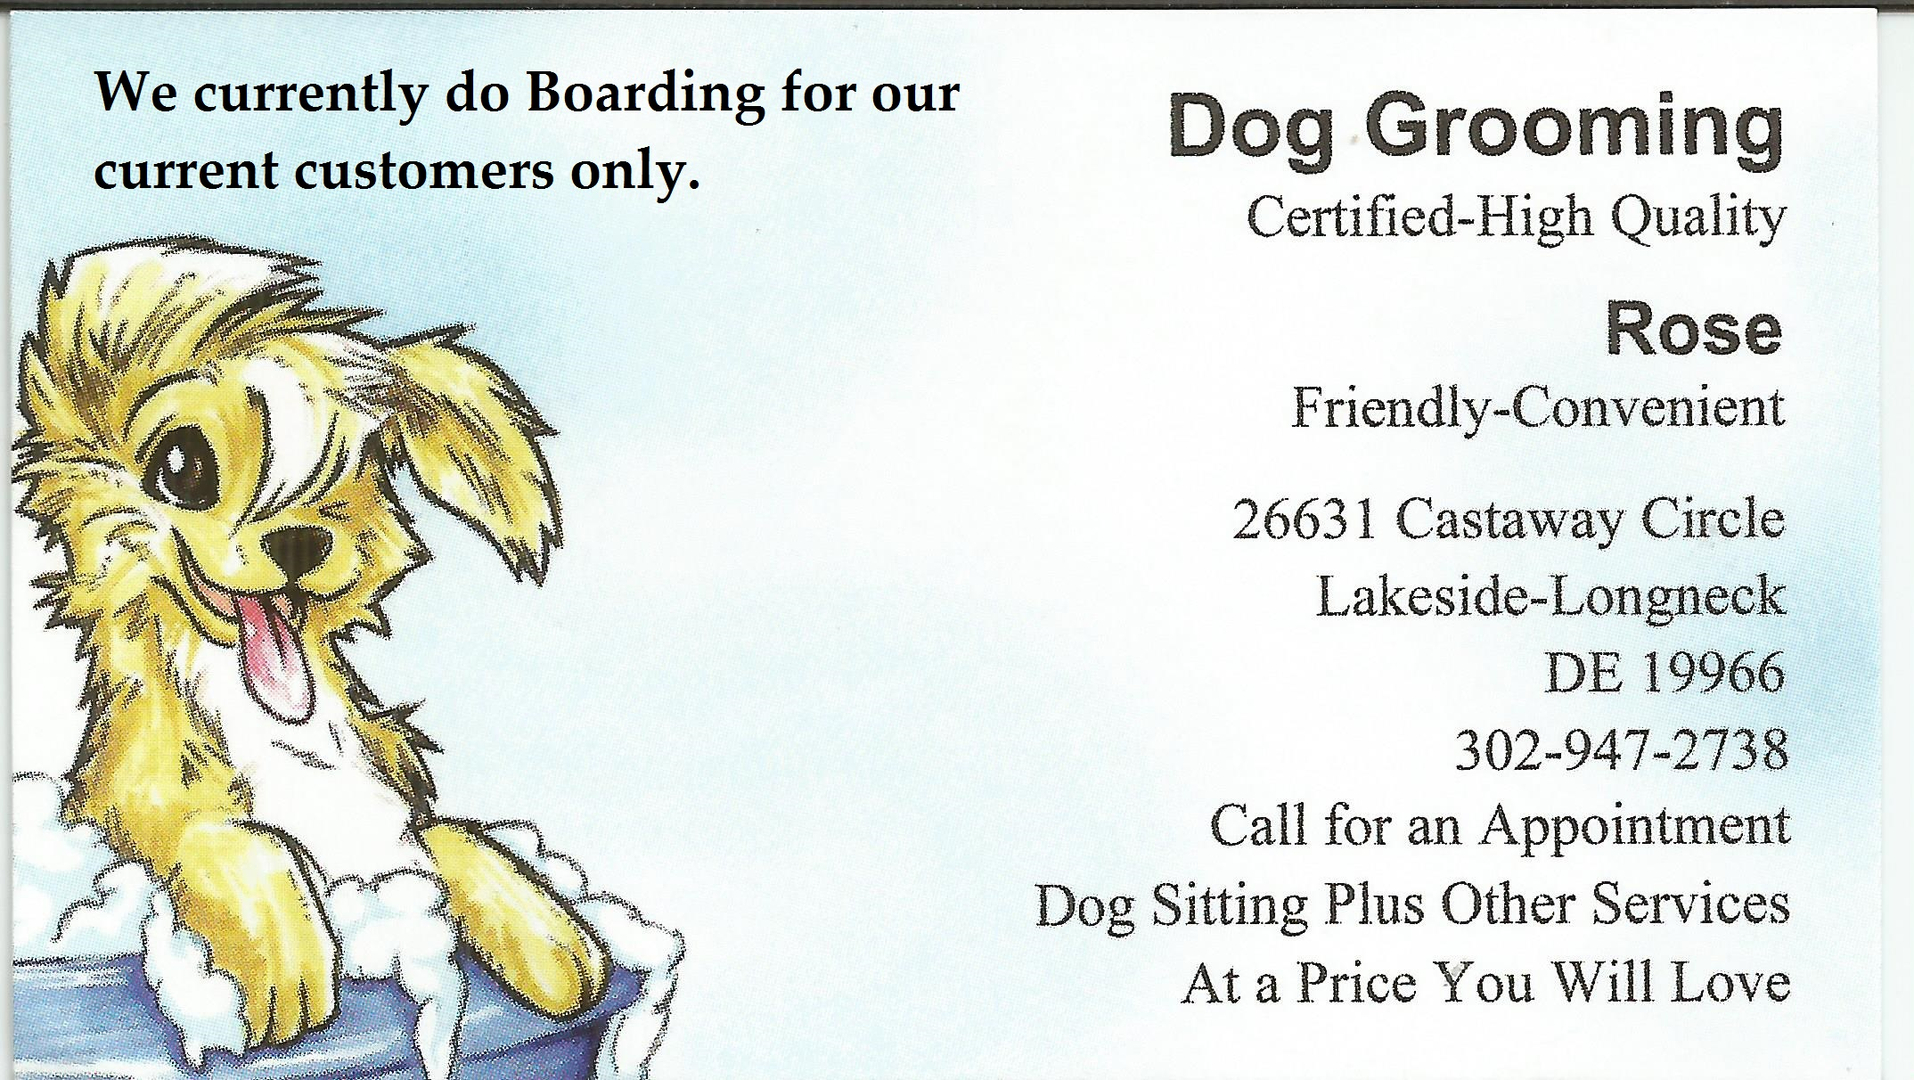 Lovely pics of dog grooming certification business cards and resume munity news from dog grooming certification image source pnhoa xflitez Image collections